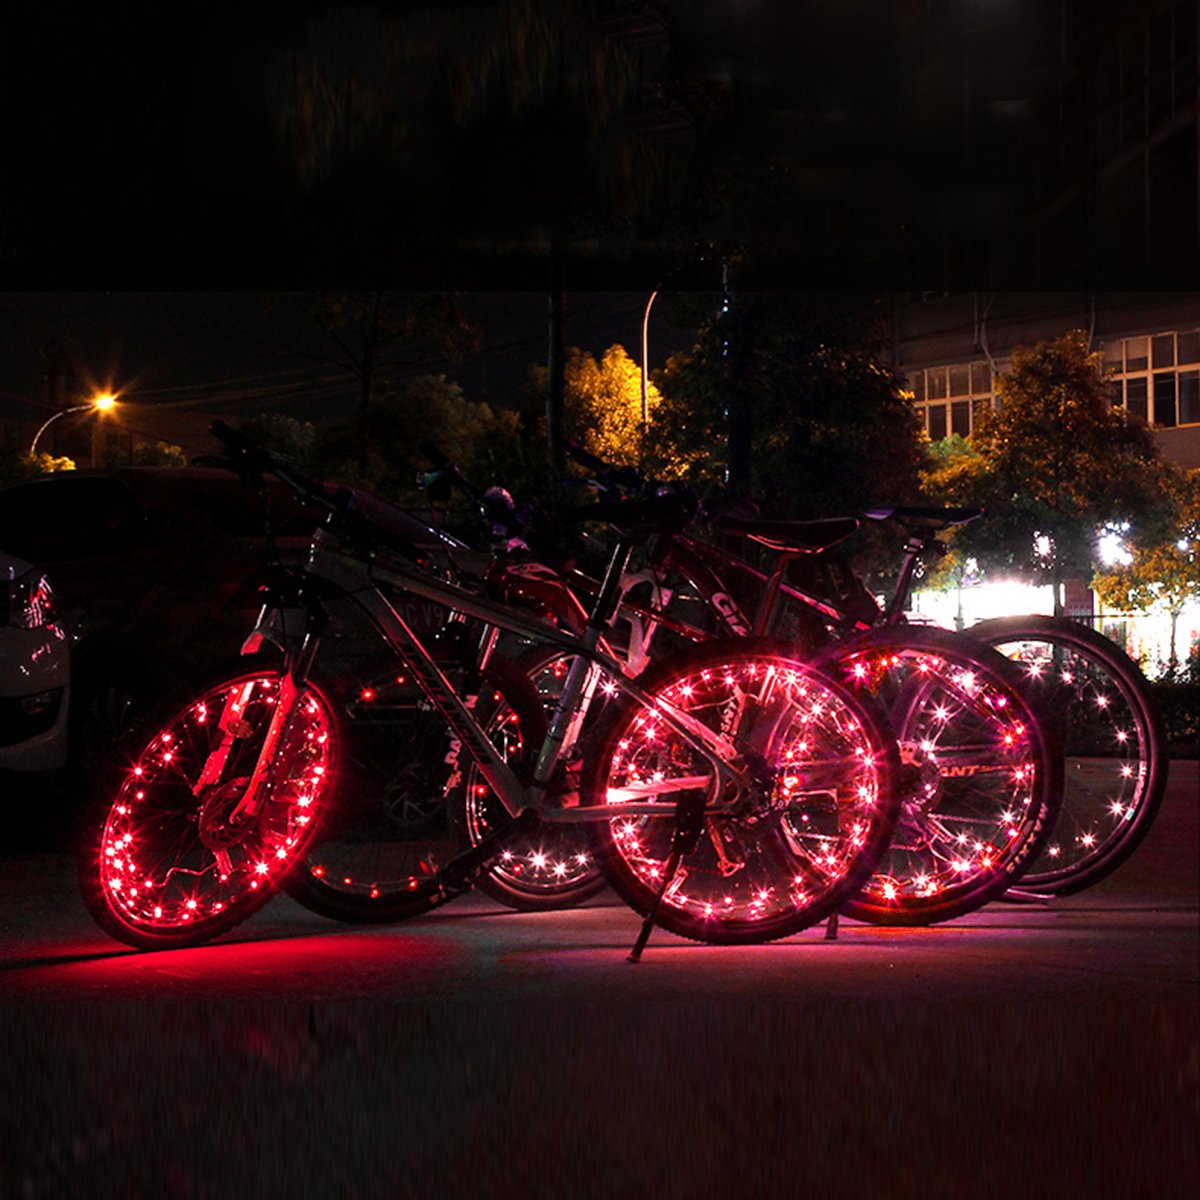 VORCOOL LED Bike Wheel Lights, Super Cool Lights Brilliant Bicycle Wheel Light String,USB Rechargeable Battery (1 Tire Pack) by VORCOOL (Image #2)